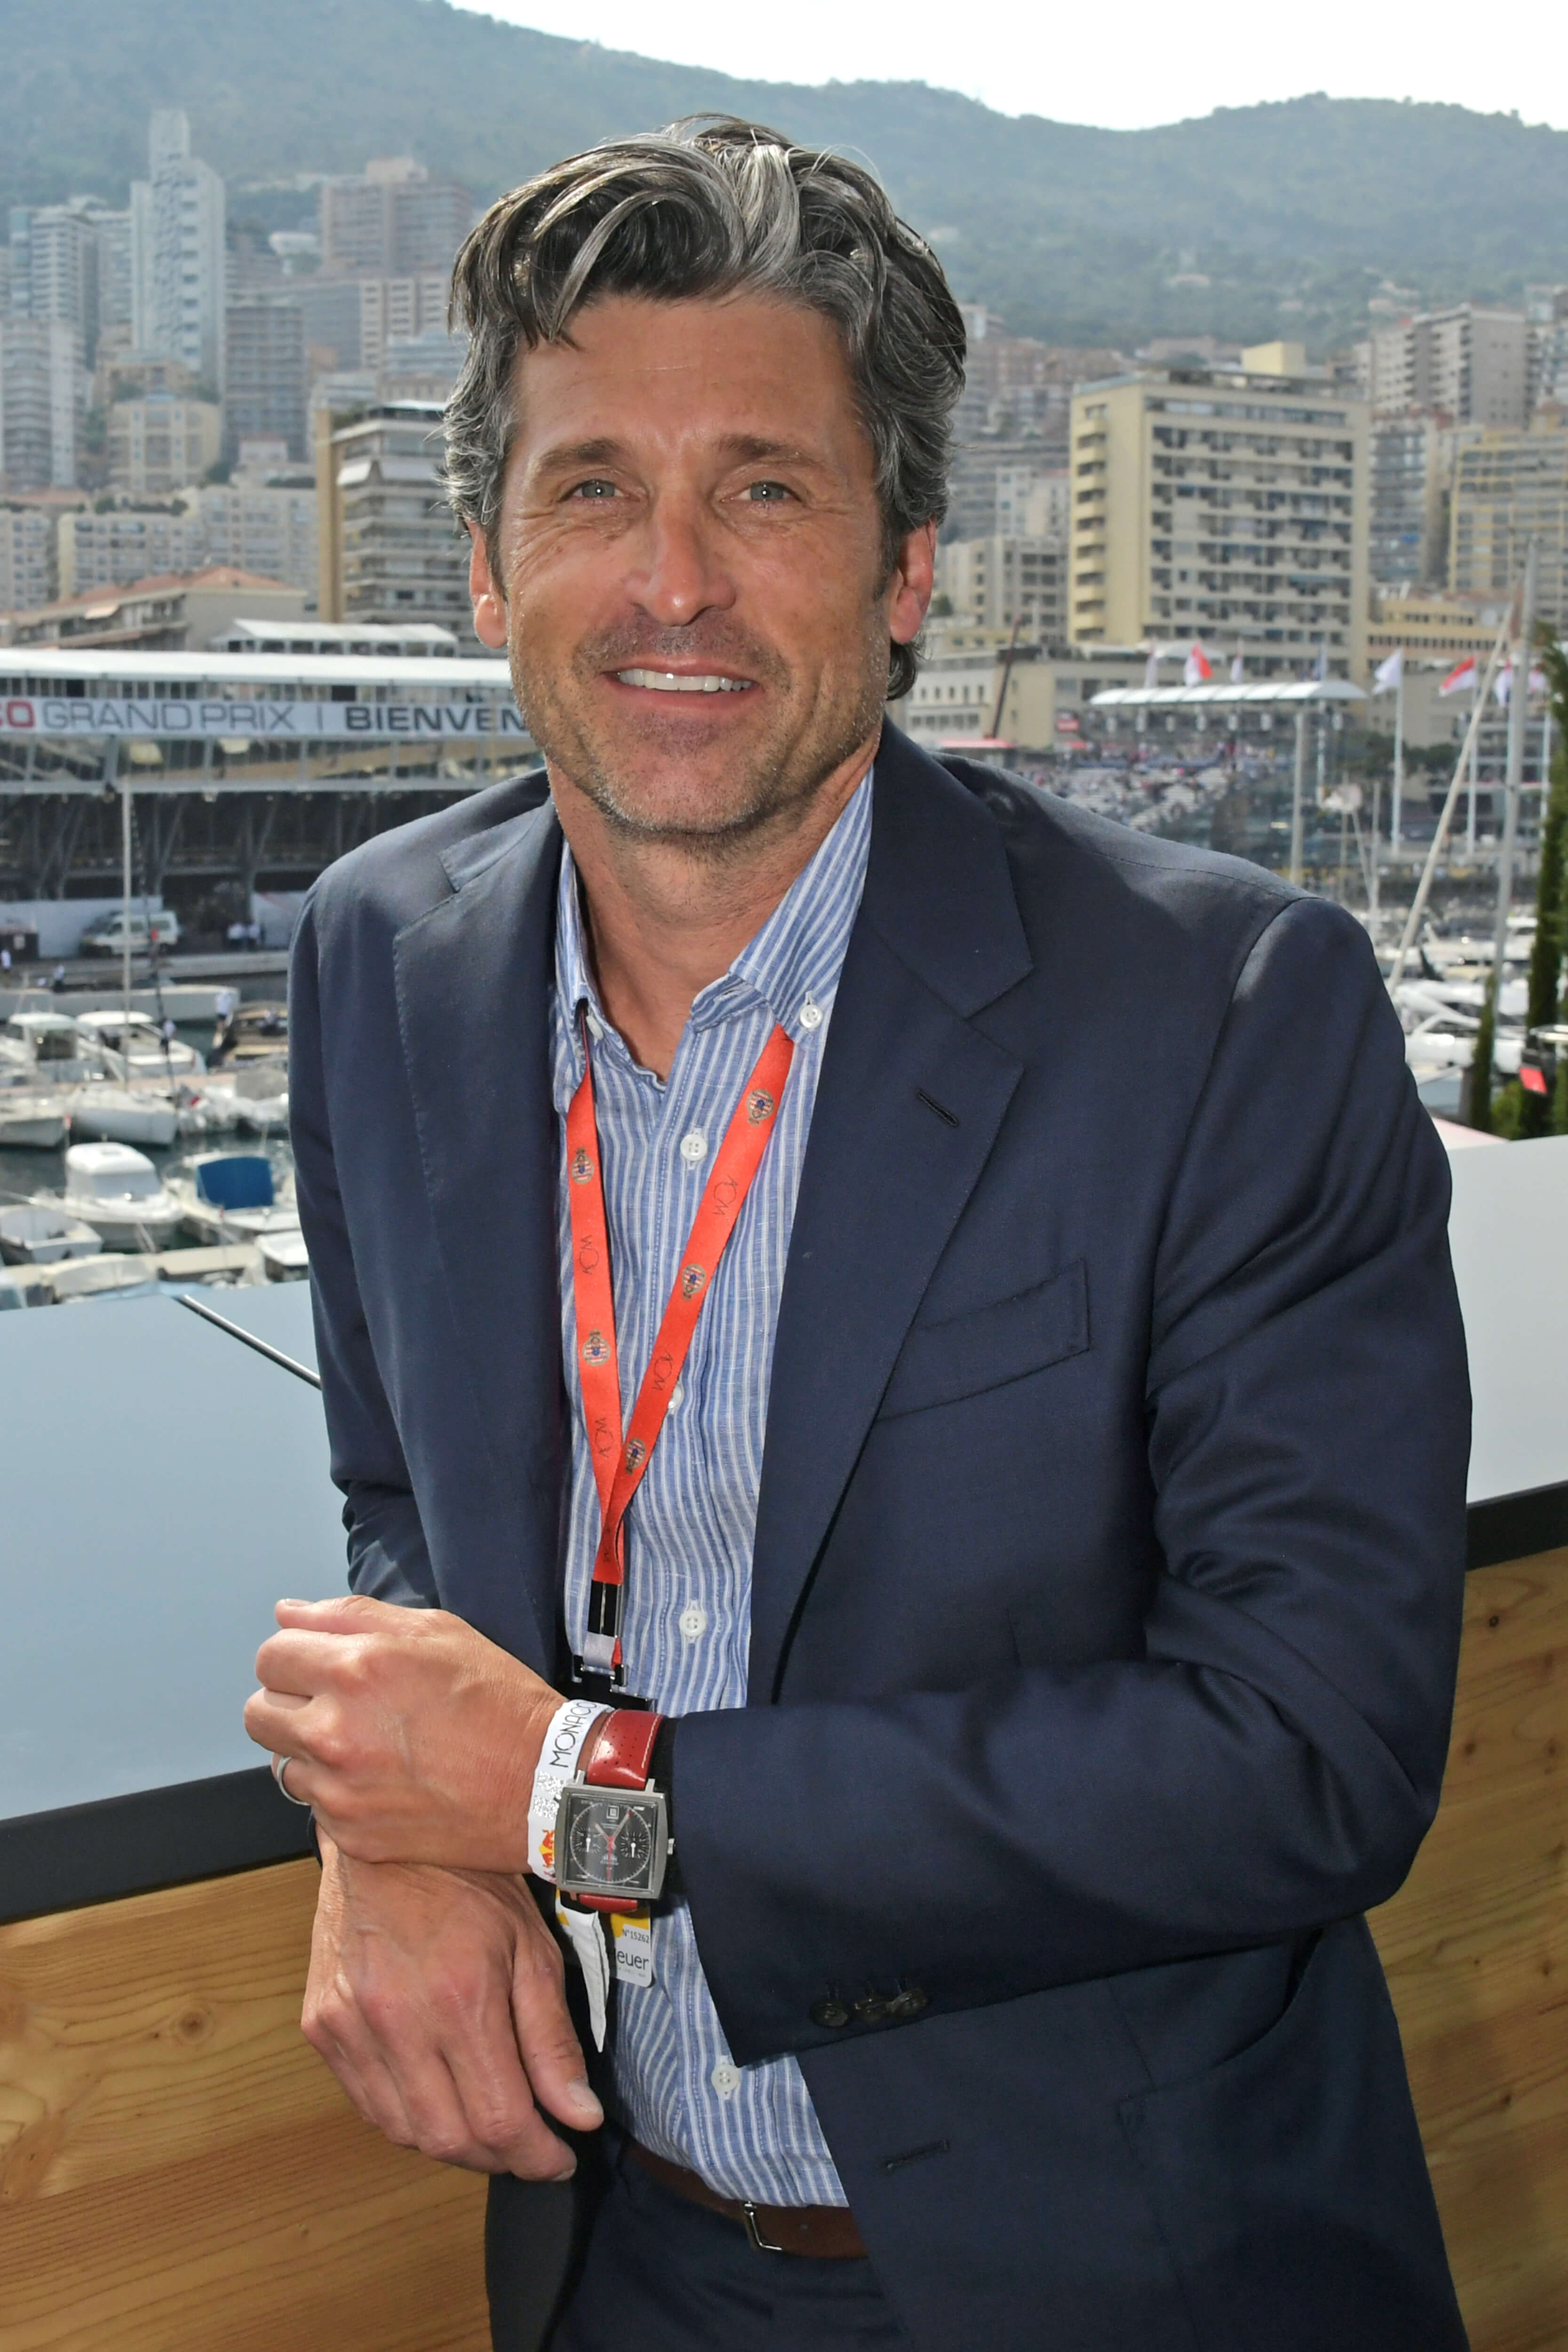 MONACO - MAY 26: Patrick Dempsey celebrates 50 Years of the Monaco Watch at the Formula 1 Grand Prix De Monaco, the legendary event that gave the watch its name in 1969, on May 26, 2019 in Monaco. (Photo by David M. Benett/Dave Benett/Getty Images for TAG Heuer)